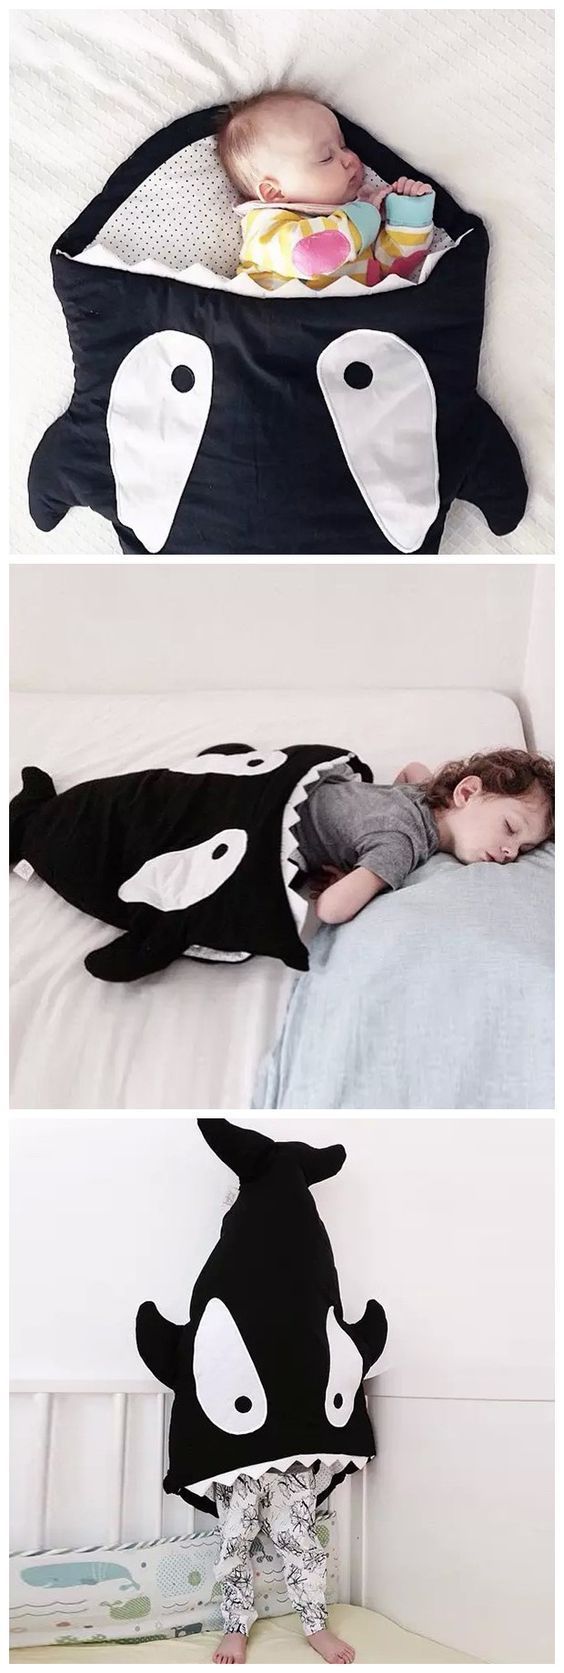 Cute shark blanket and sleep sack for babies and toddlers.. Ahhhh I want one!